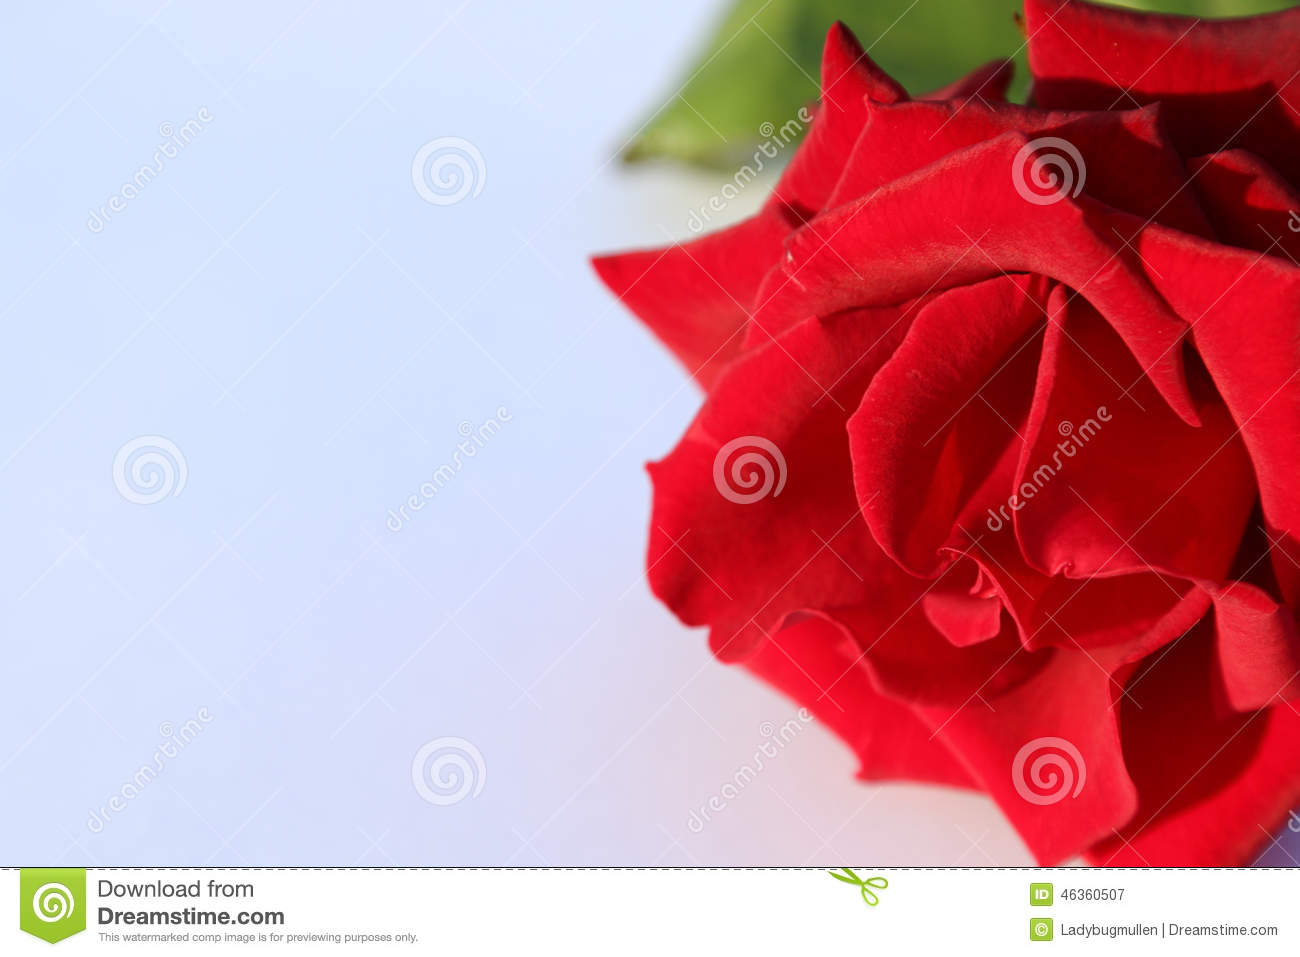 Black Magic Rose Stock Photo Image 46360507